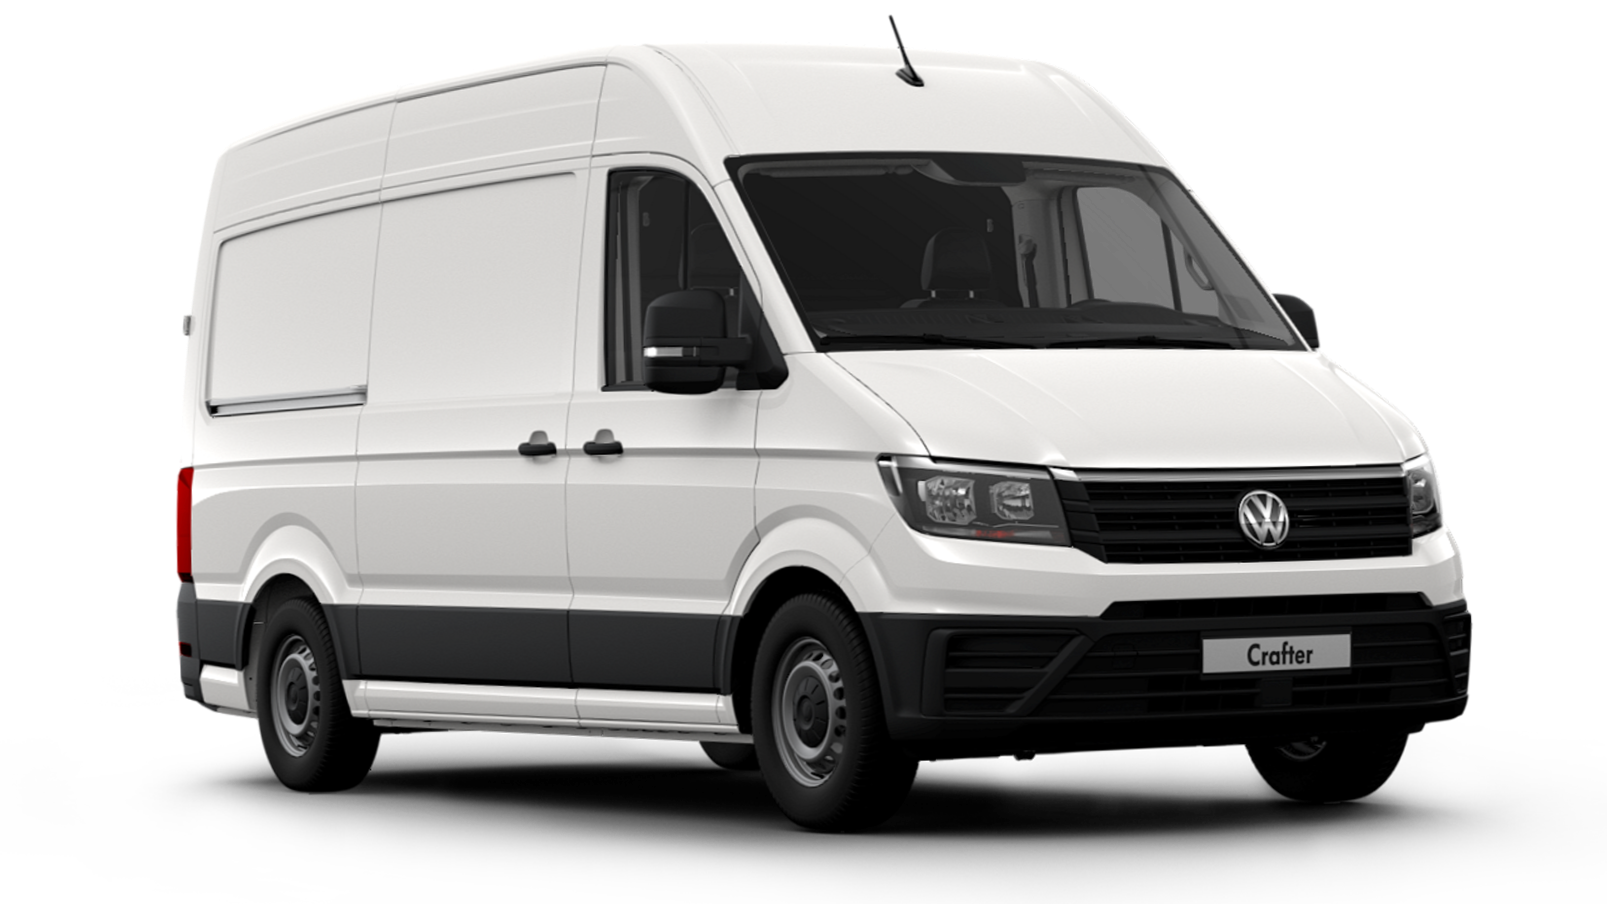 Picture of a VW Crafter Van